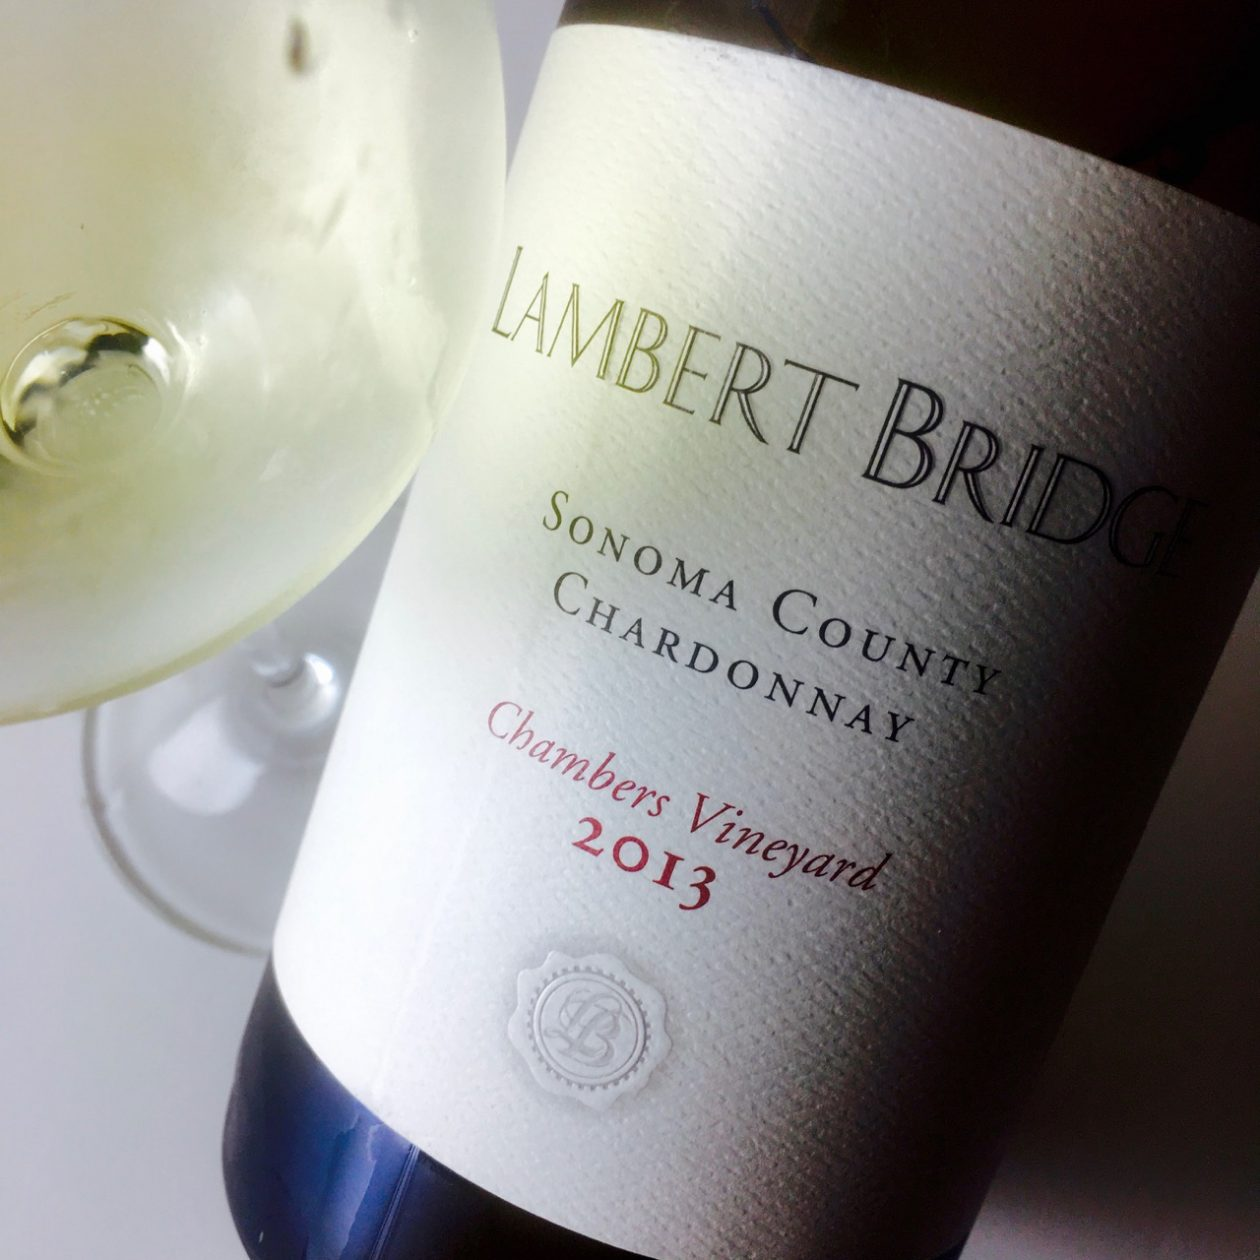 2013 Lambert Bridge Chardonnay Chambers Vineyard Sonoma County